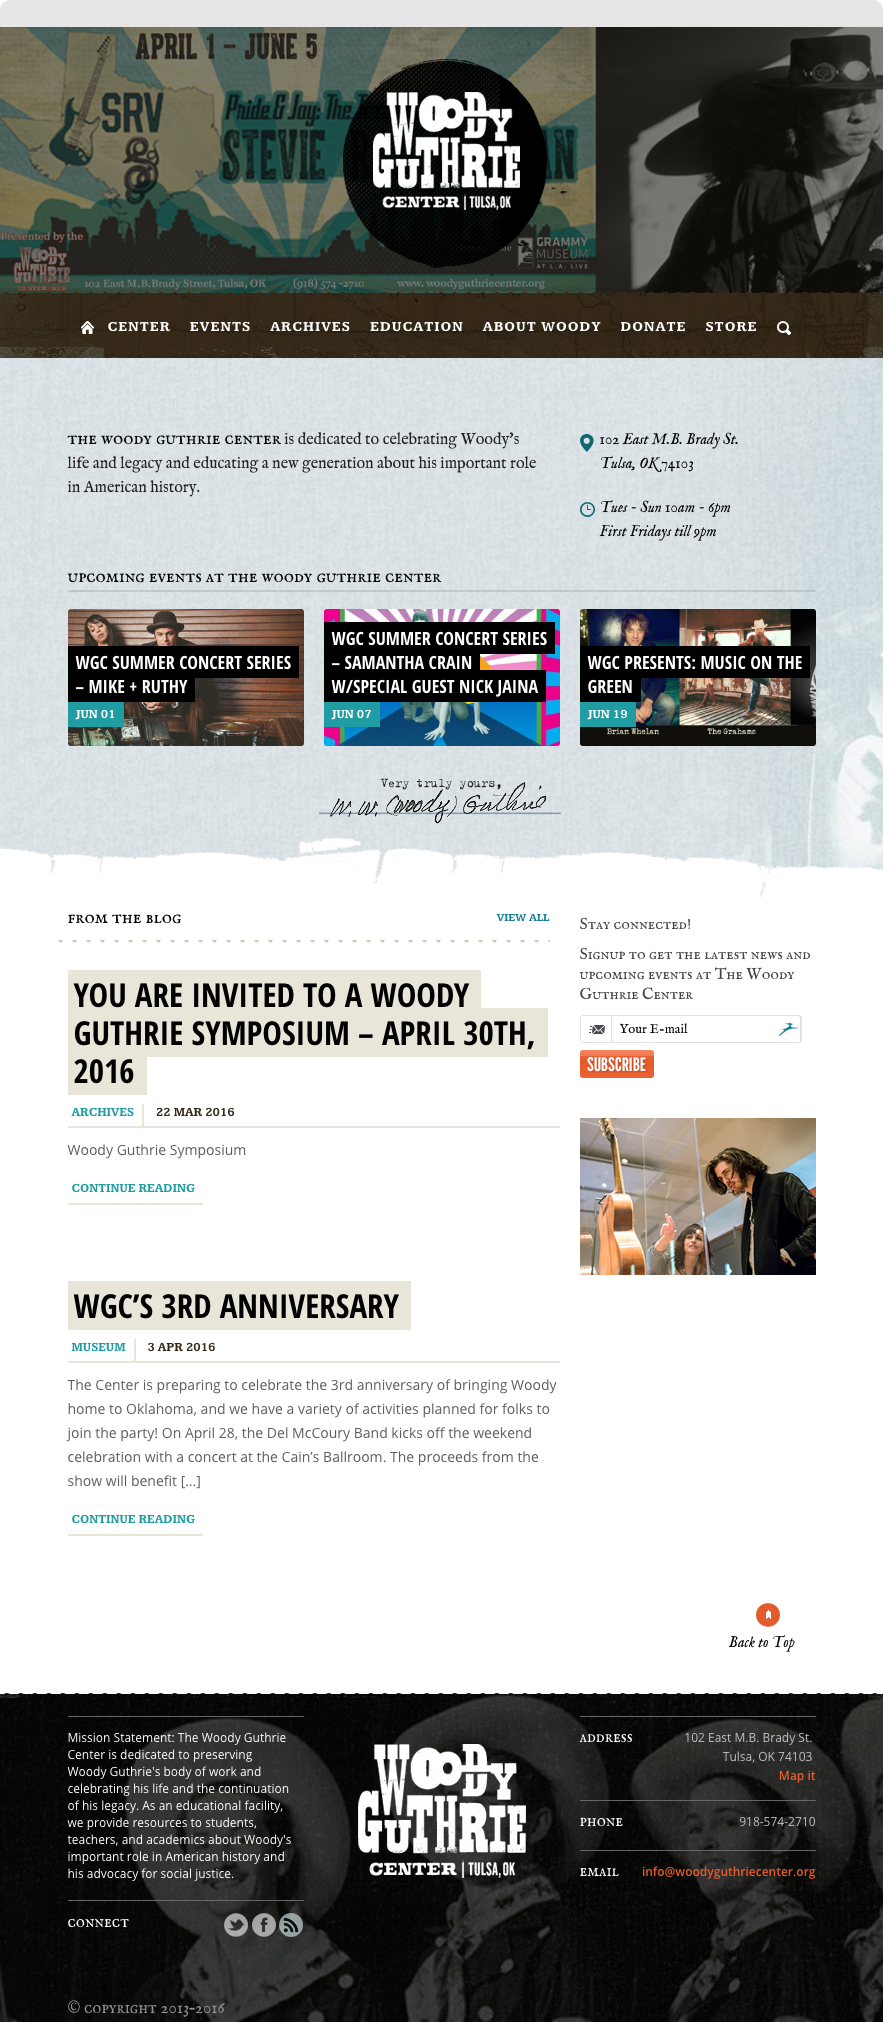 Woody Guthrie Center website Home Page, shown on desktop browser